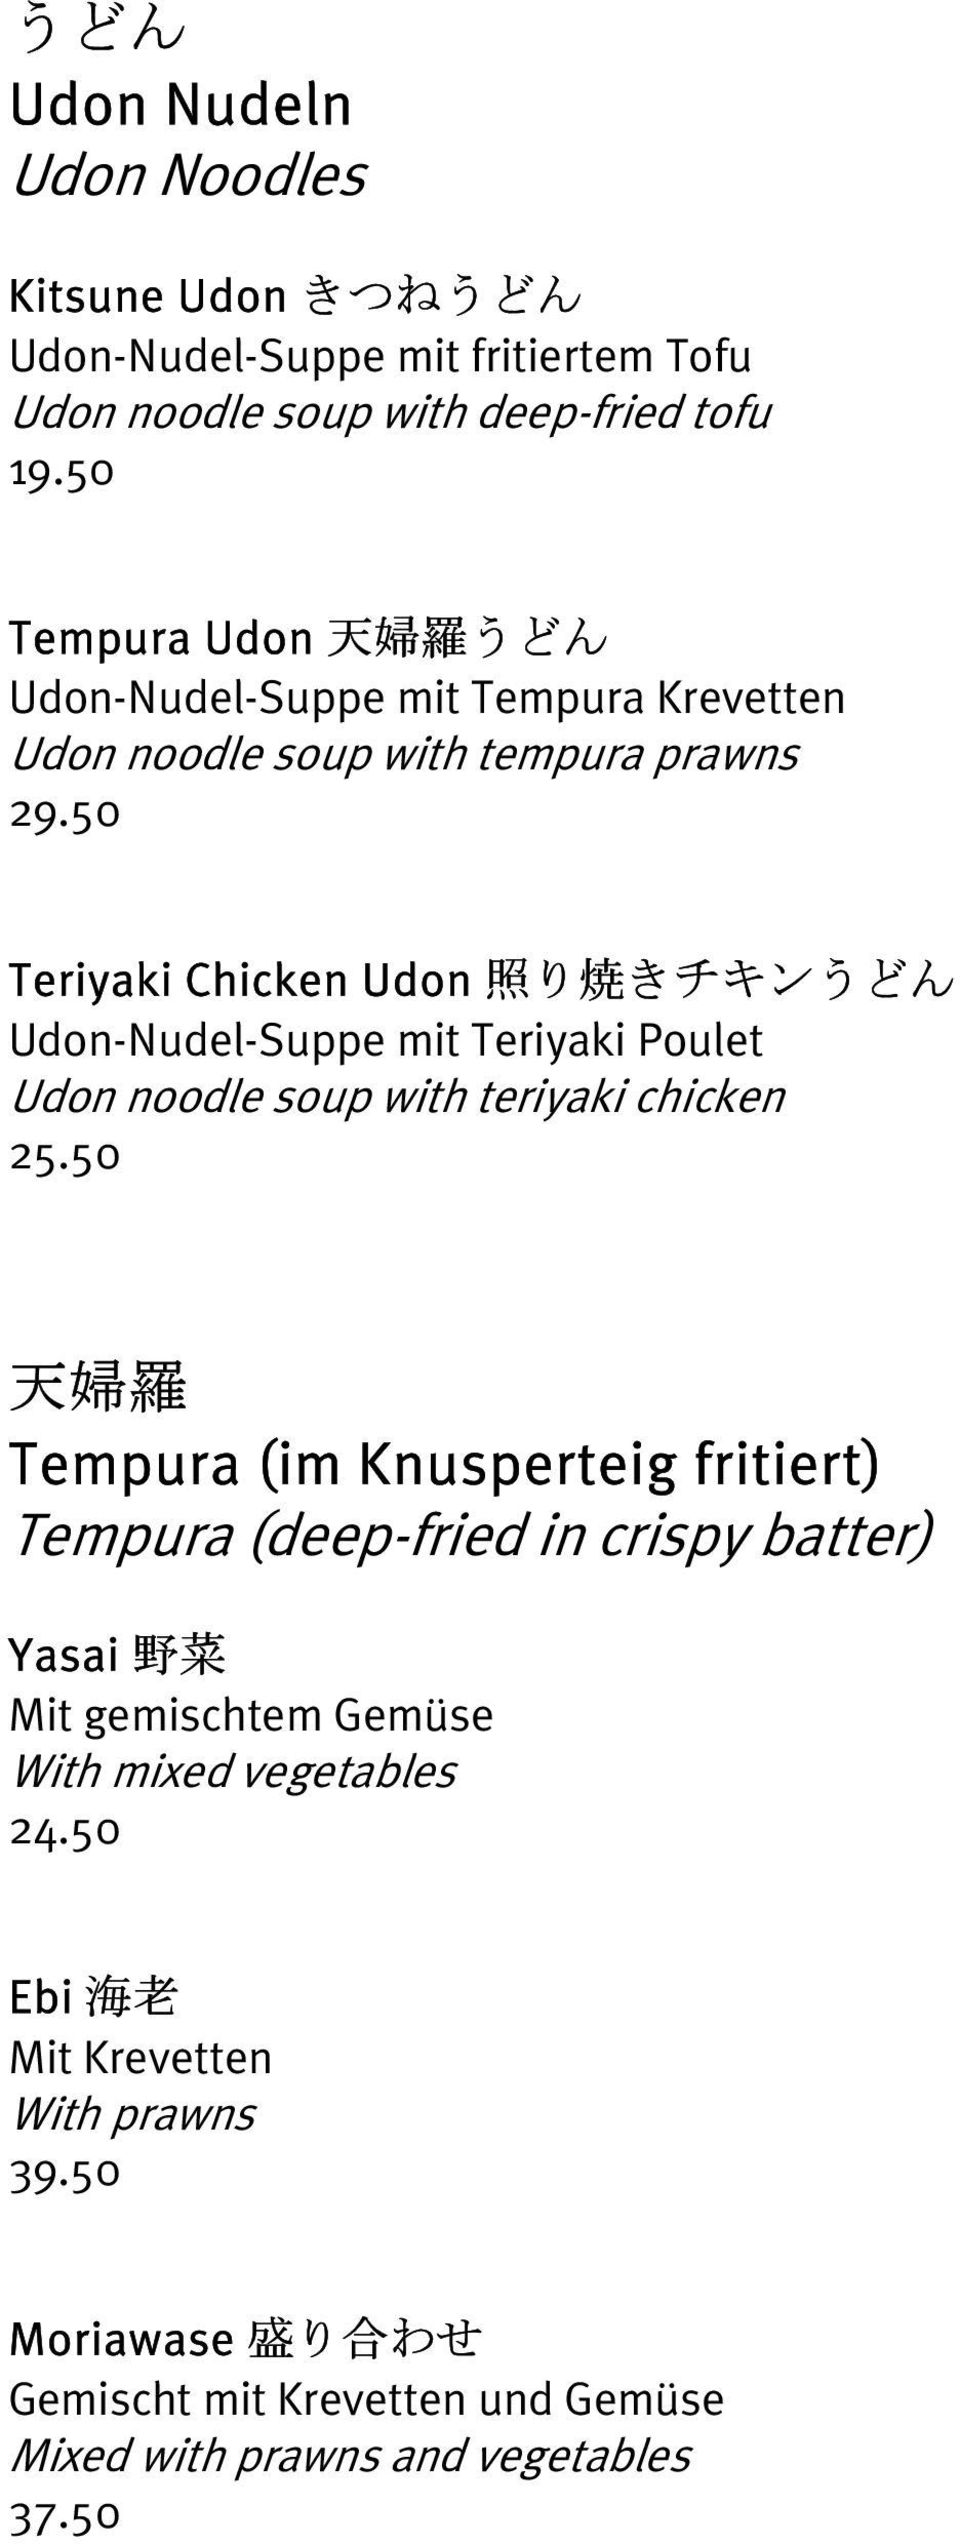 50 Teriyaki Chicken Udon 照 り 焼 きチキンうどん Udon-Nudel-Suppe mit Teriyaki Poulet Udon noodle soup with teriyaki chicken 25.